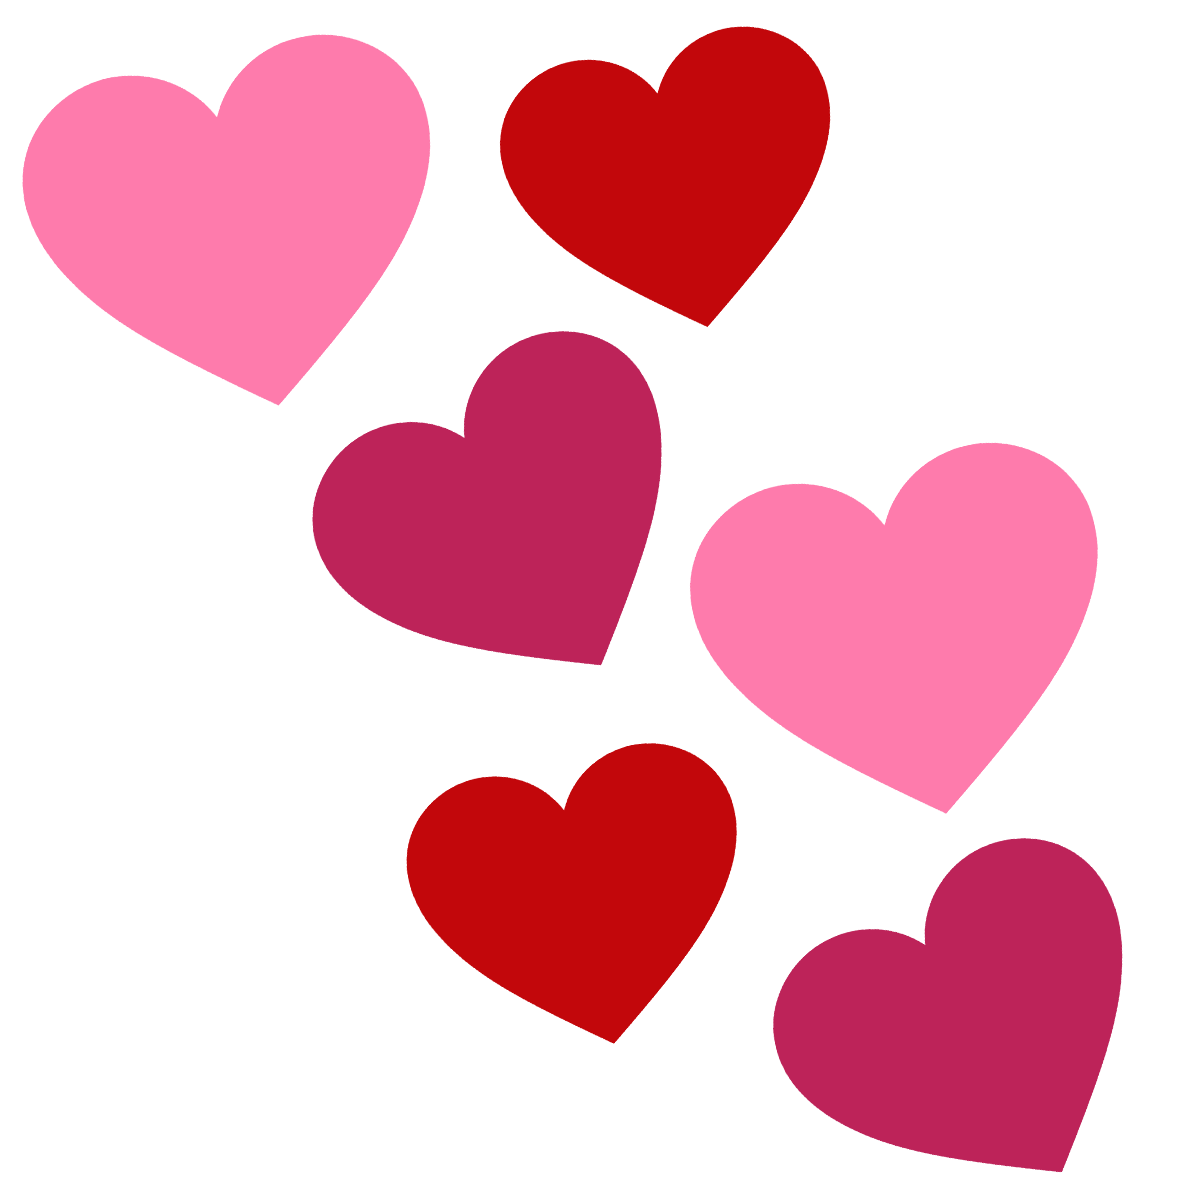 Heart Clipart | Fotolip.com Rich image and wallpaper png freeuse